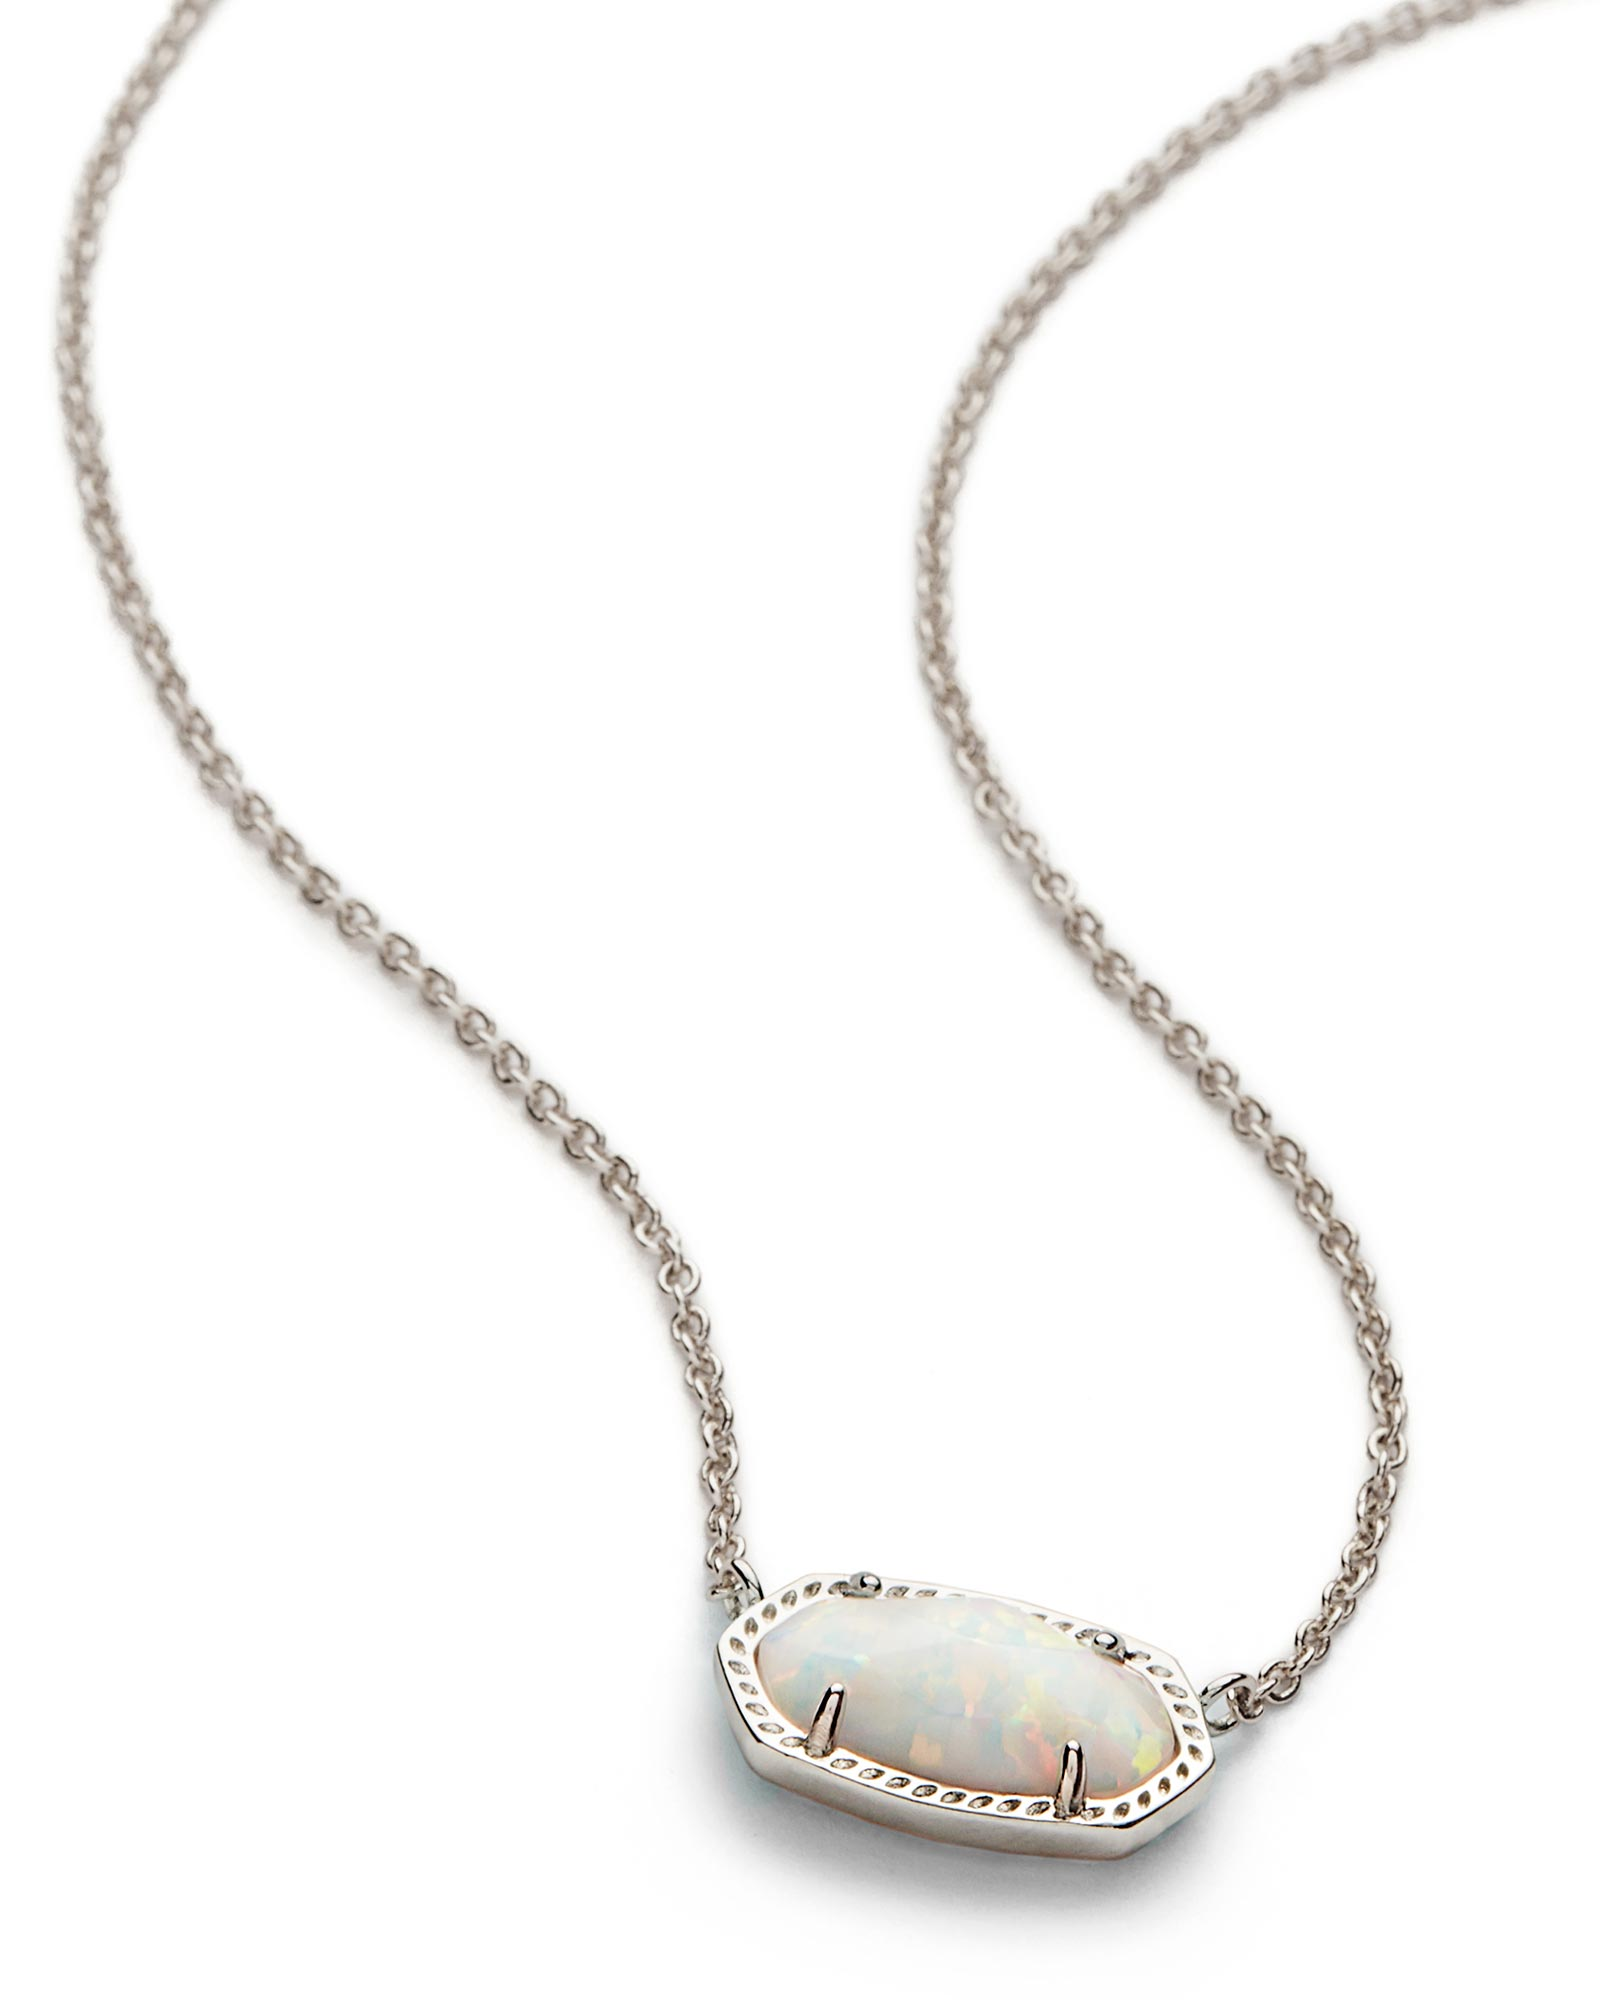 Elisa silver pendant necklace in white opal kendra scott elisa silver pendant necklace in white kyocera opal aloadofball Image collections